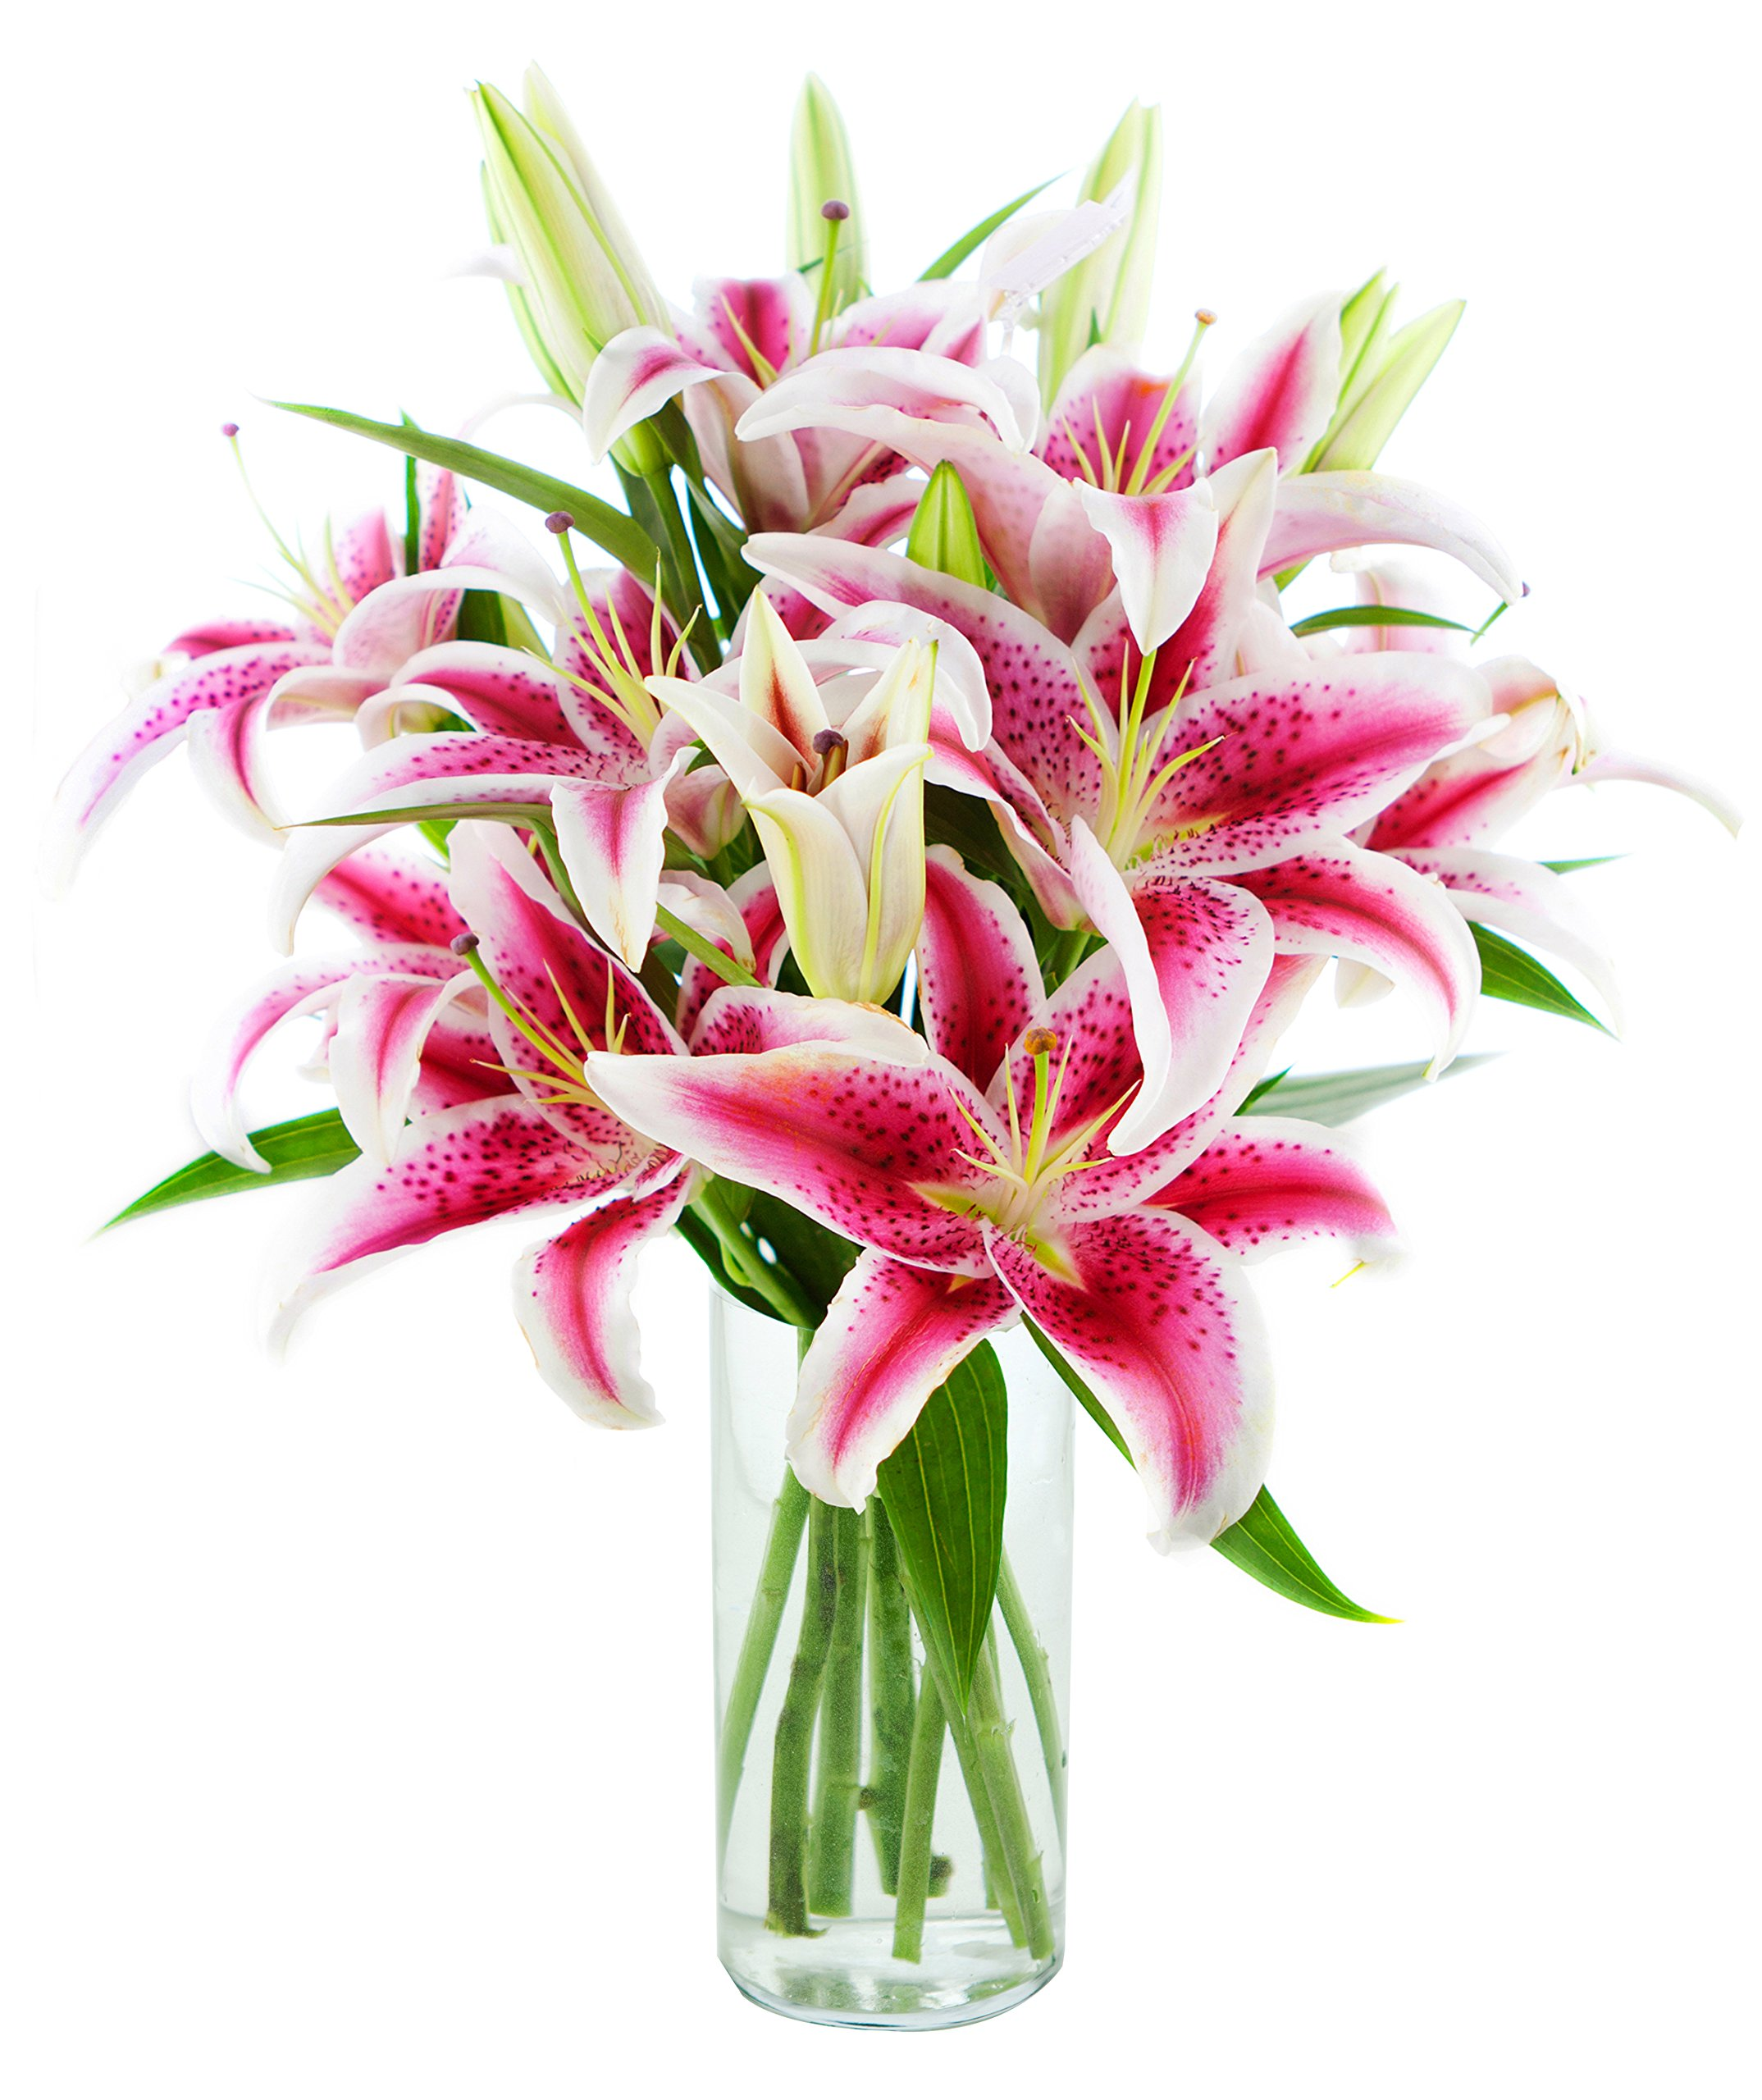 Amazon bouquet of 8 fresh cut stargazer lilies with vase by kabloom bouquet of 8 fresh cut stargazer lilies with vase izmirmasajfo